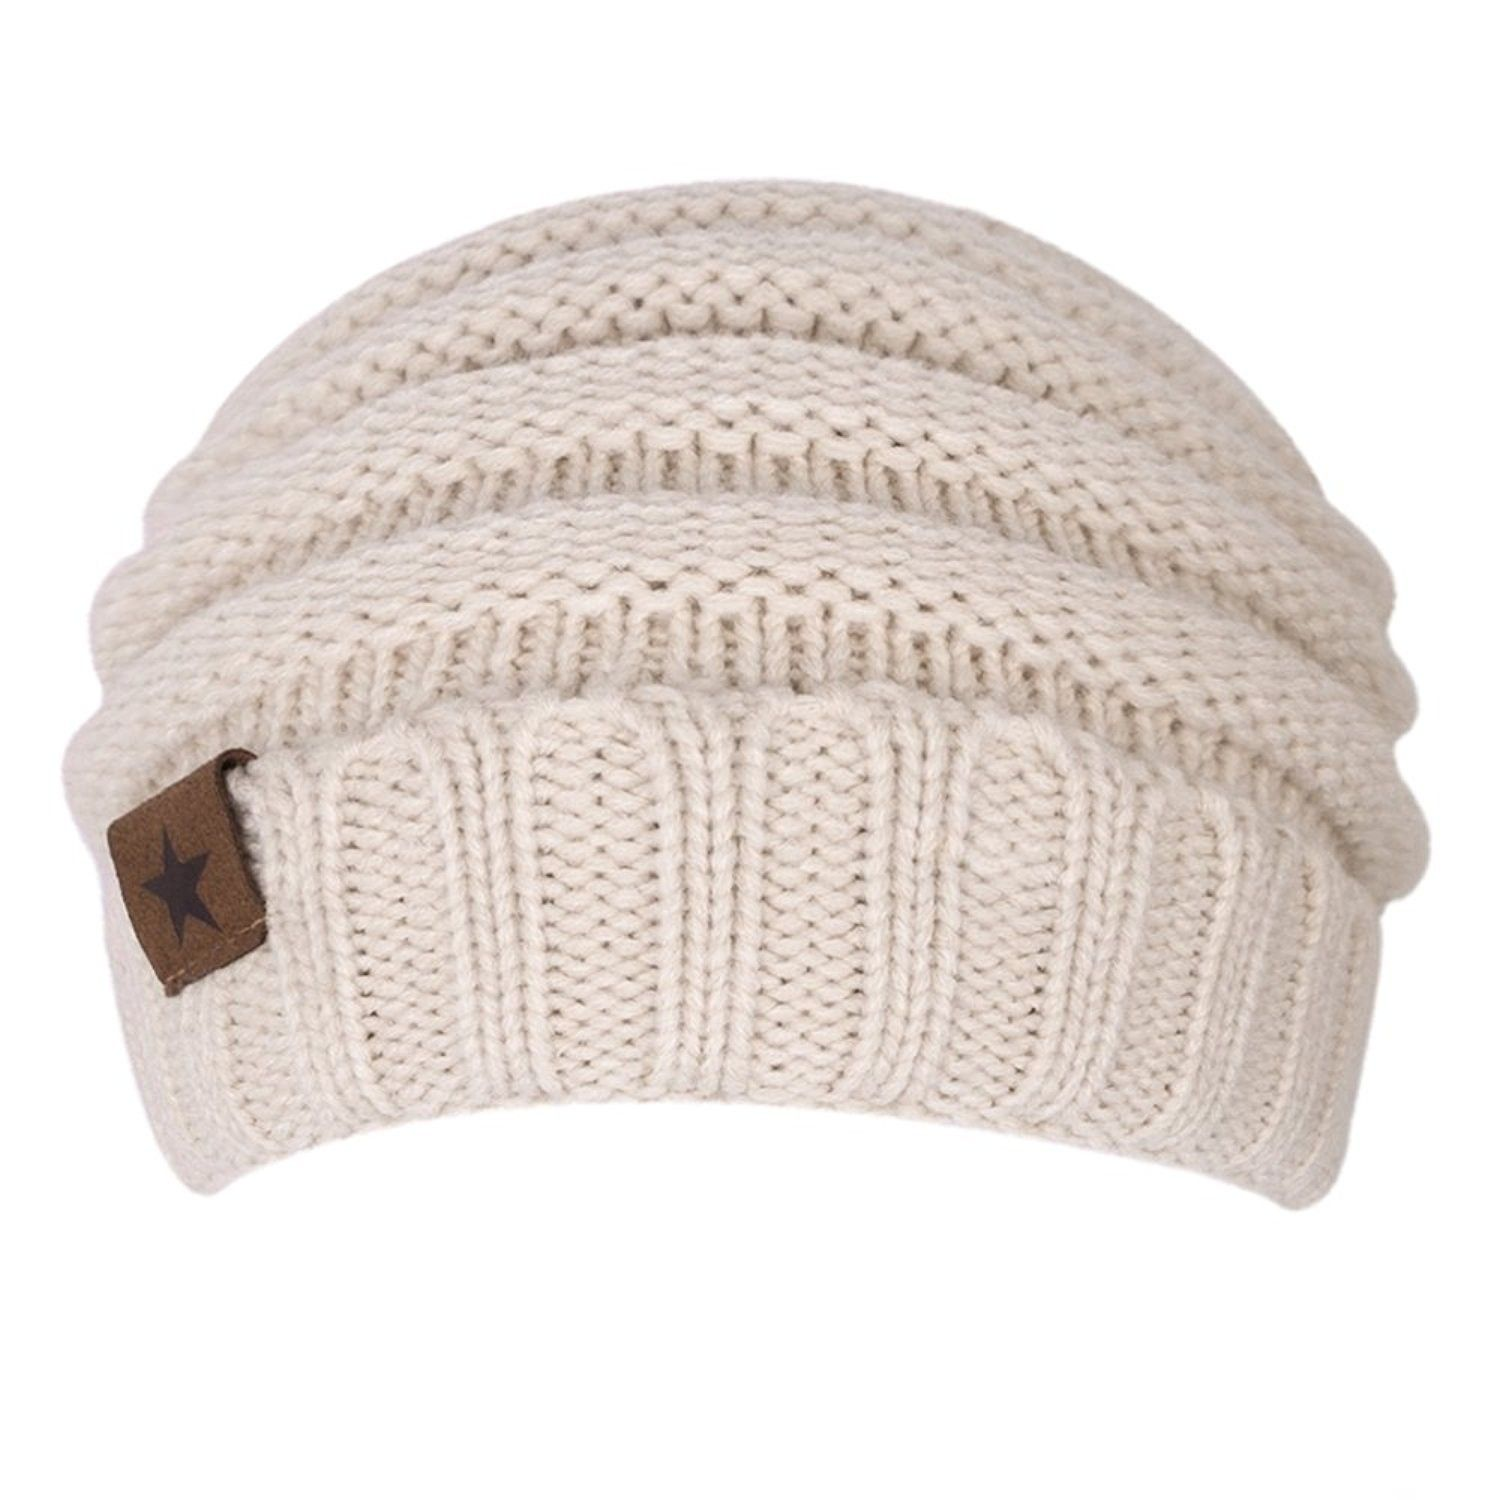 Beanie Hat- Women s Winter Fleece Lined Cable Knitted Beanie Hat - Beige -  C8186G4GY52 - Hats   Caps 9584d0cdbe2